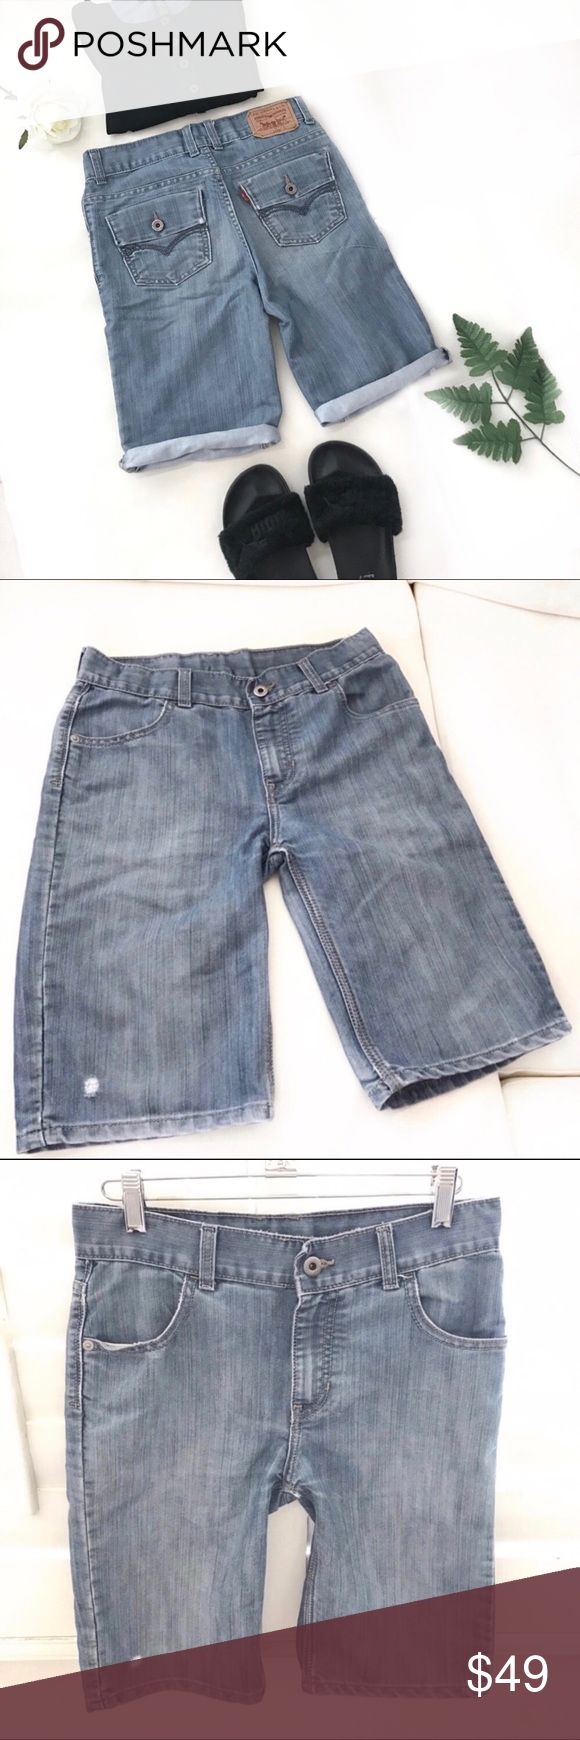 """LEVI'S bermuda shorts size 24 A cross between pants and cutoff jean shorts. Slightly distressed denim. Great for everyday or weekend. Vintage classic feel! Gigi Hadid wears her own similar version a little longer.  54% cotton, 45% polyester   Waist 24"""" Rise 9"""" Inseam 10"""" Levi's Shorts Jean Shorts"""